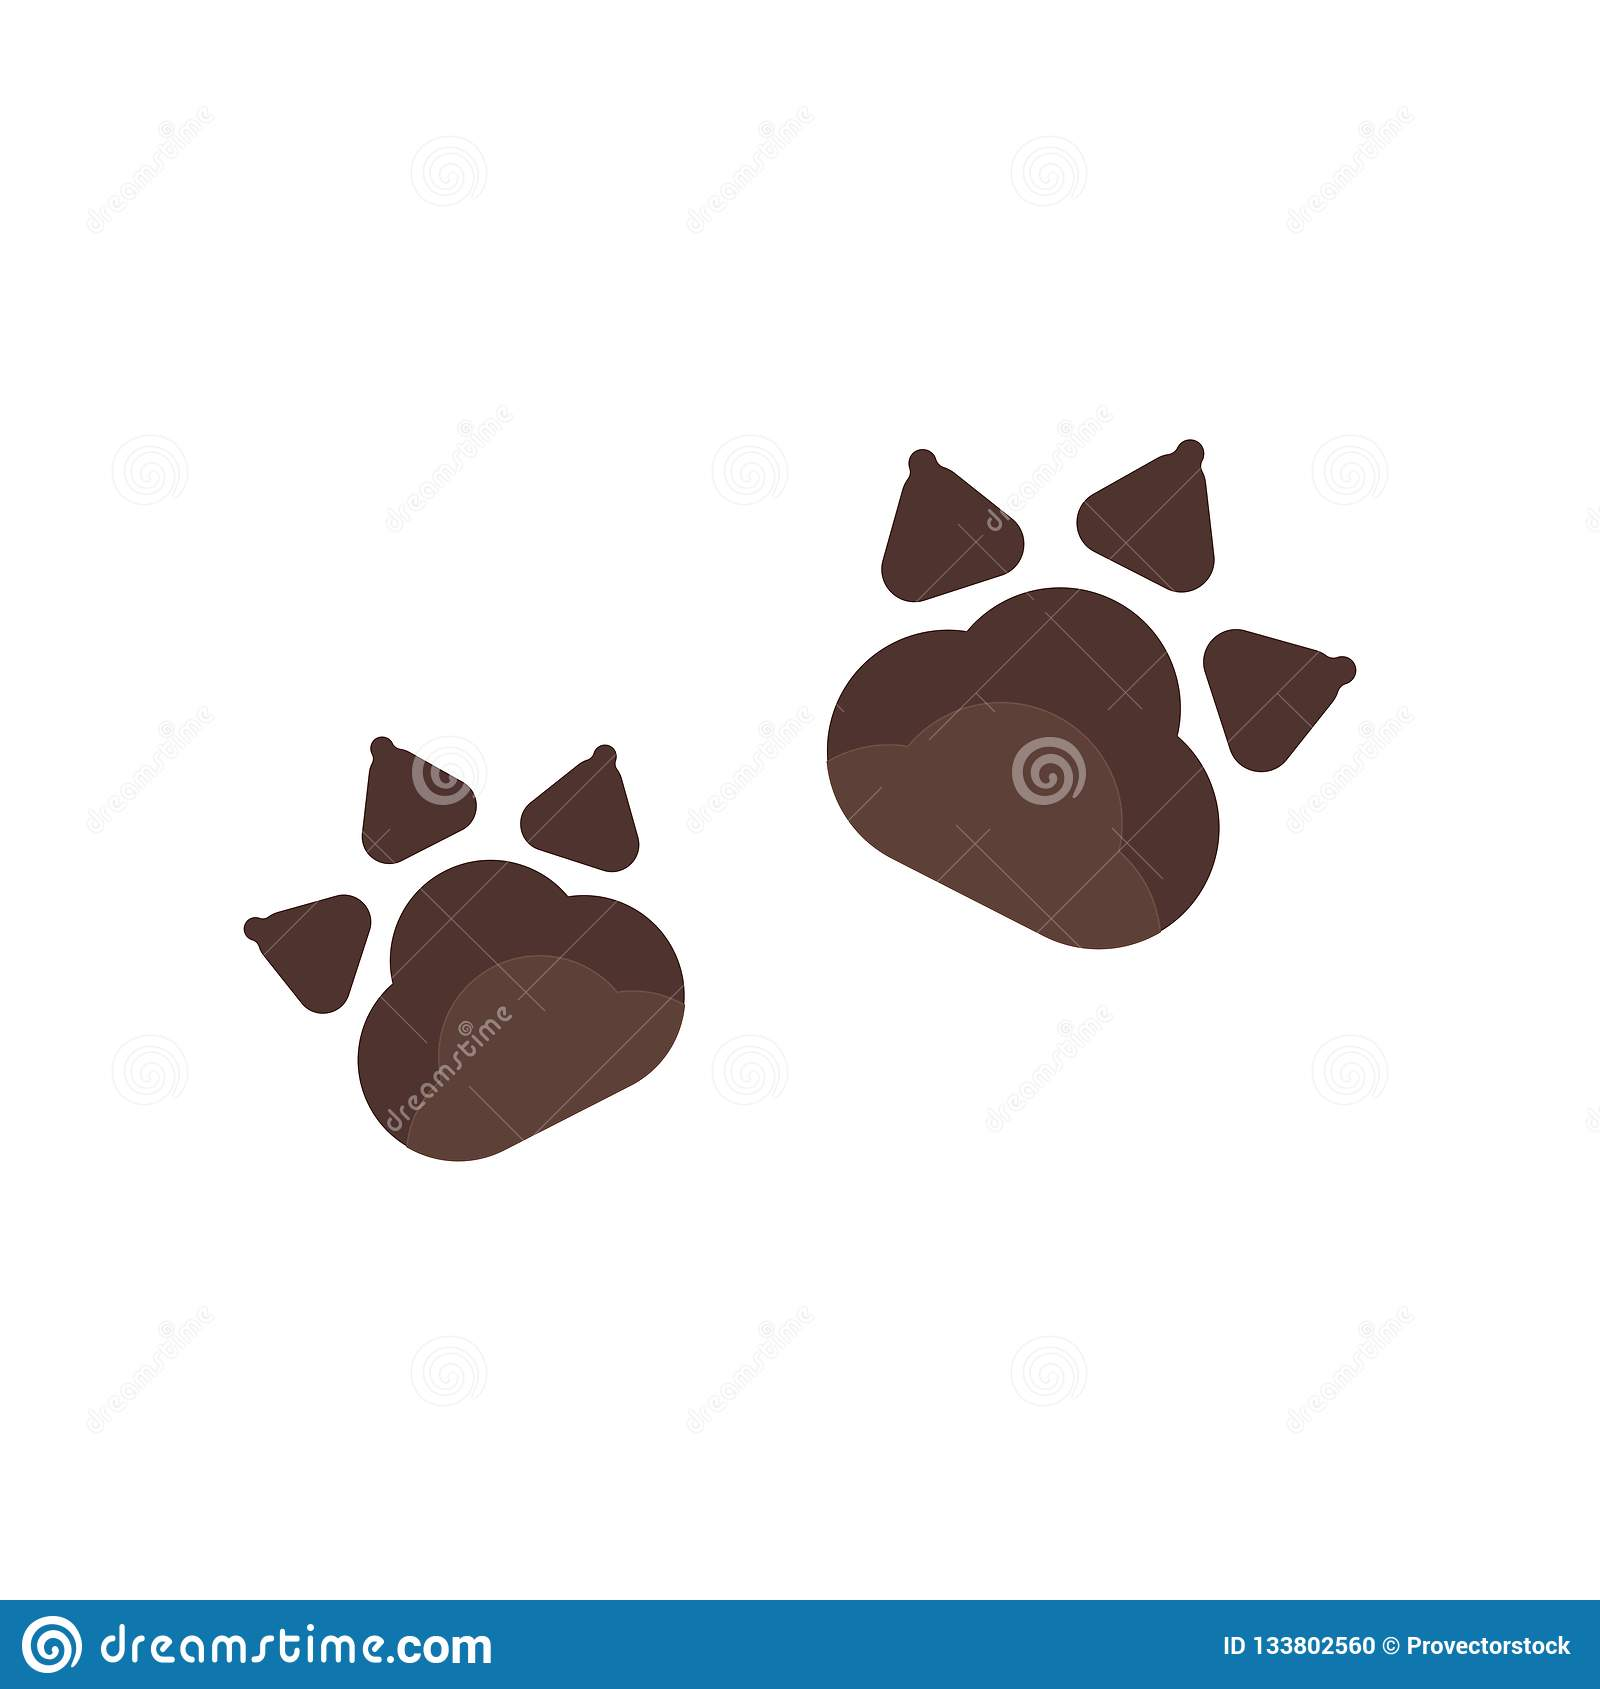 Pawprints icon vector sign and symbol isolated on white background